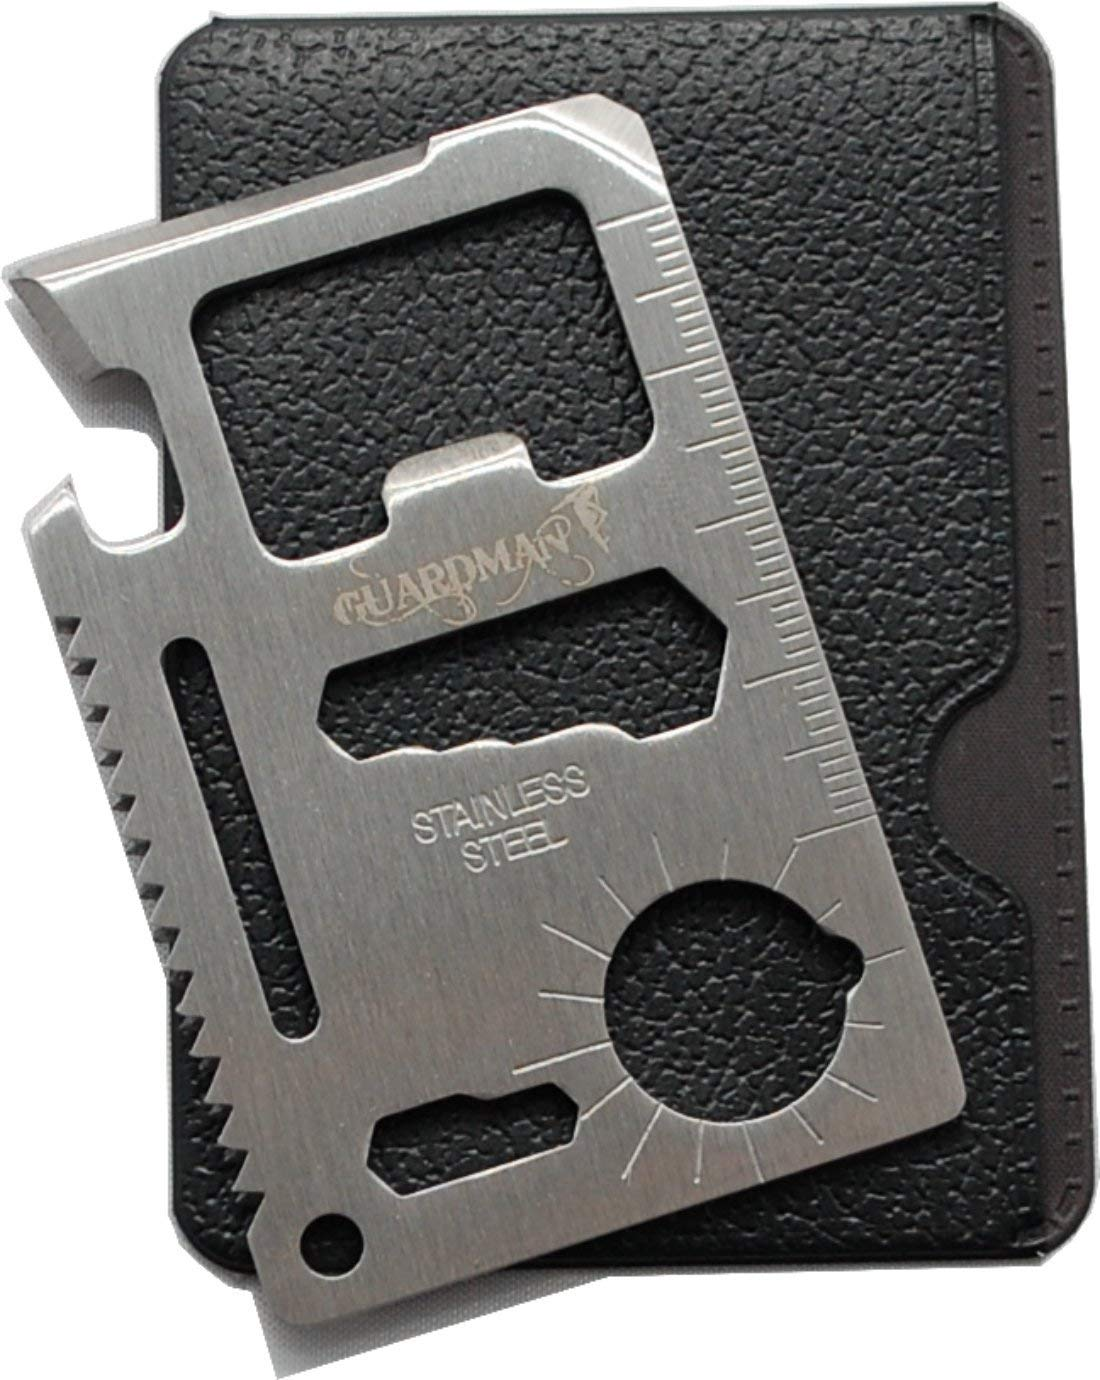 Guardman 11 in 1 Beer Opener Survival Credit Card